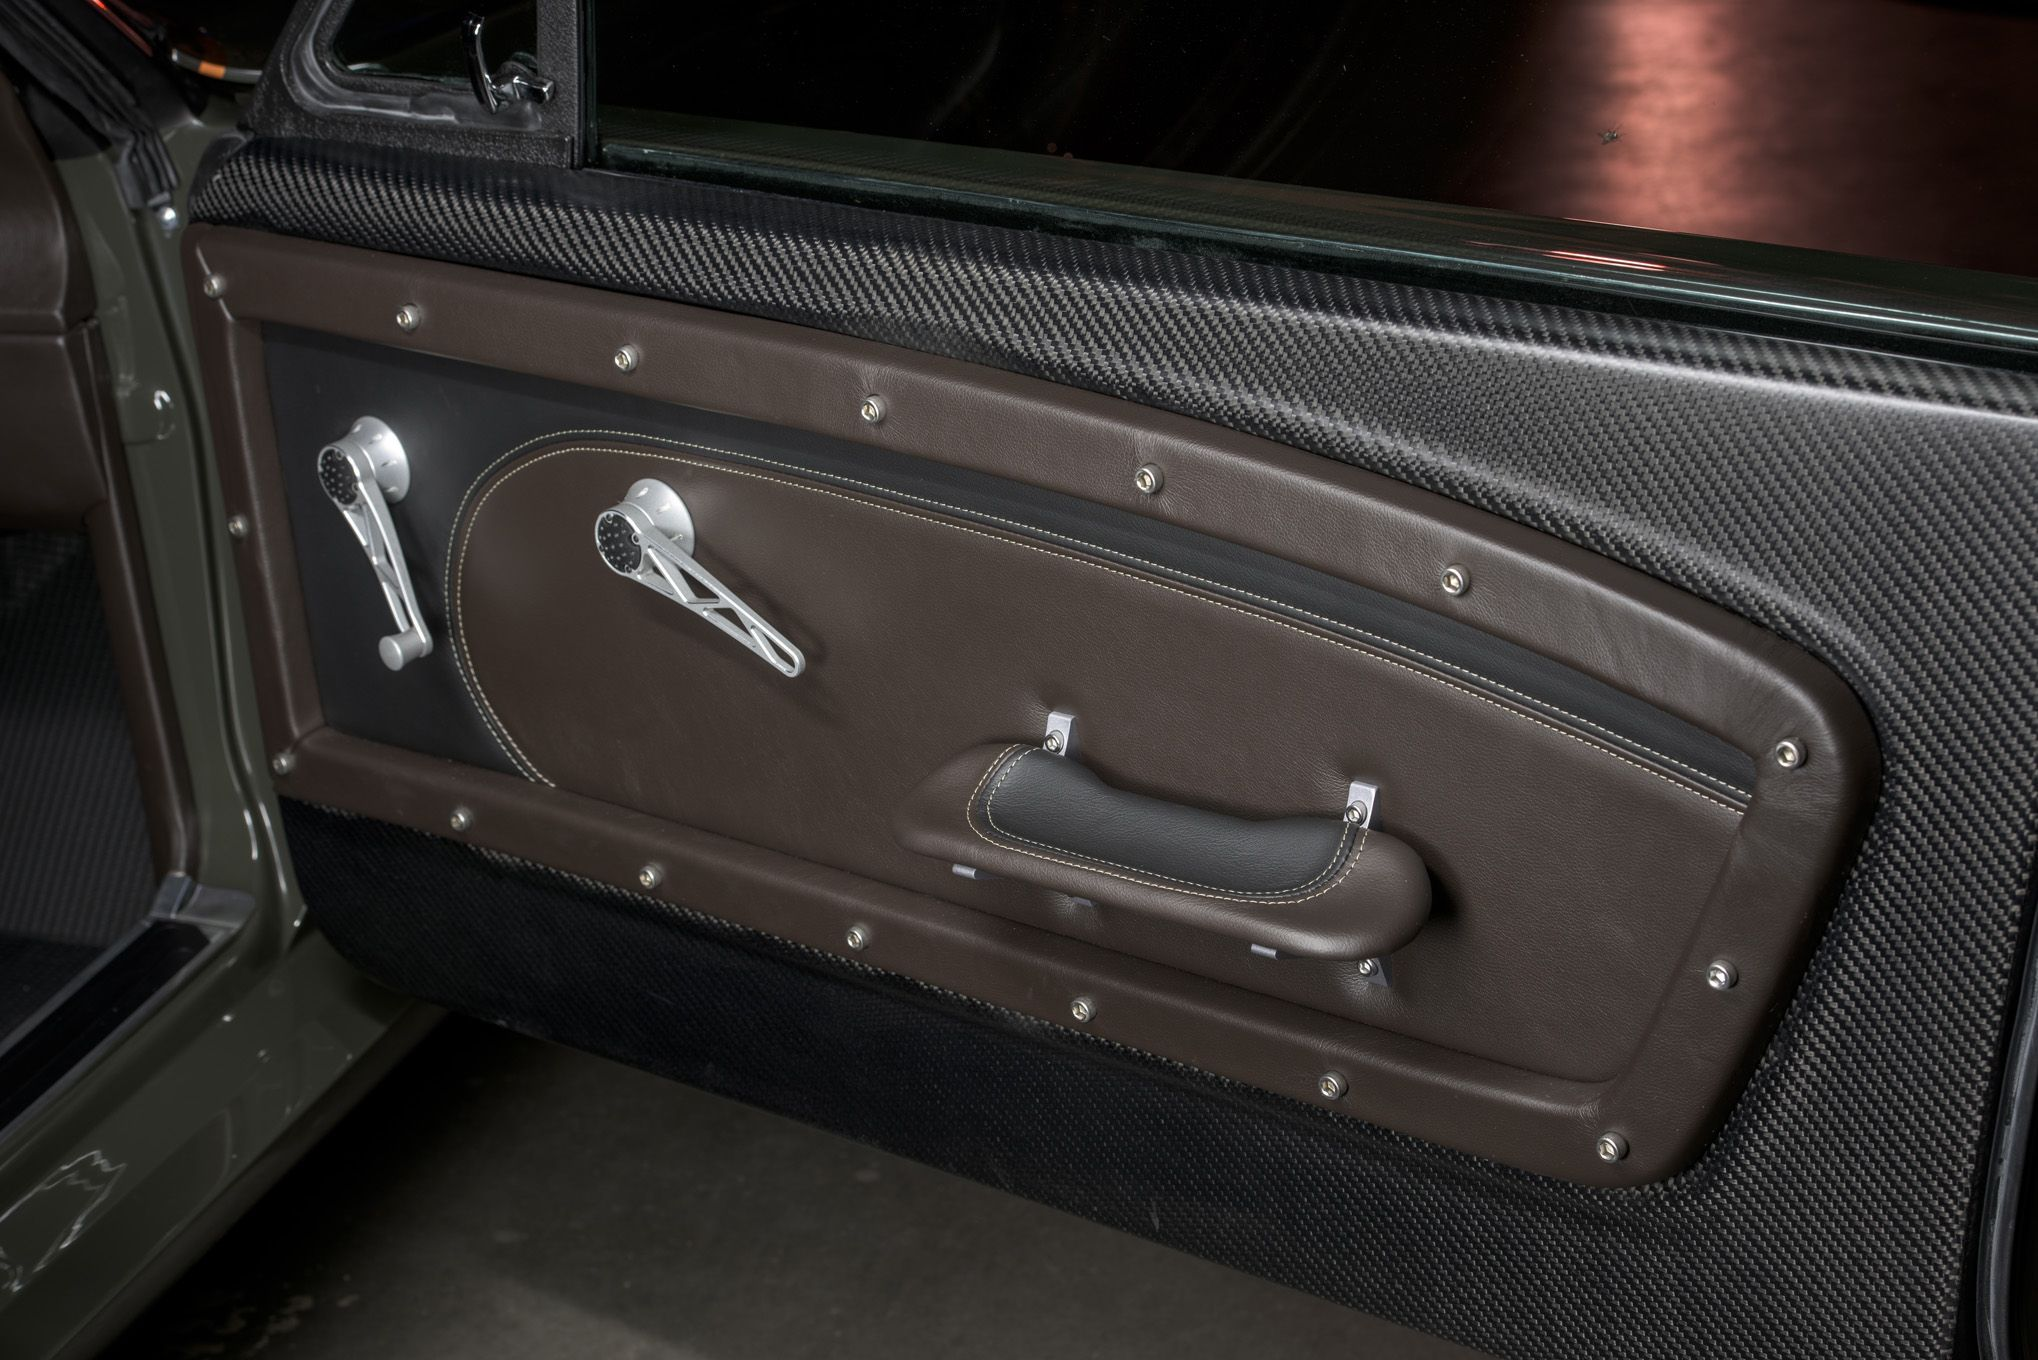 021 Rb Espionage Mustang Jpg 2038 1360 Automotive Upholstery Car Interior Upholstery Custom Car Interior